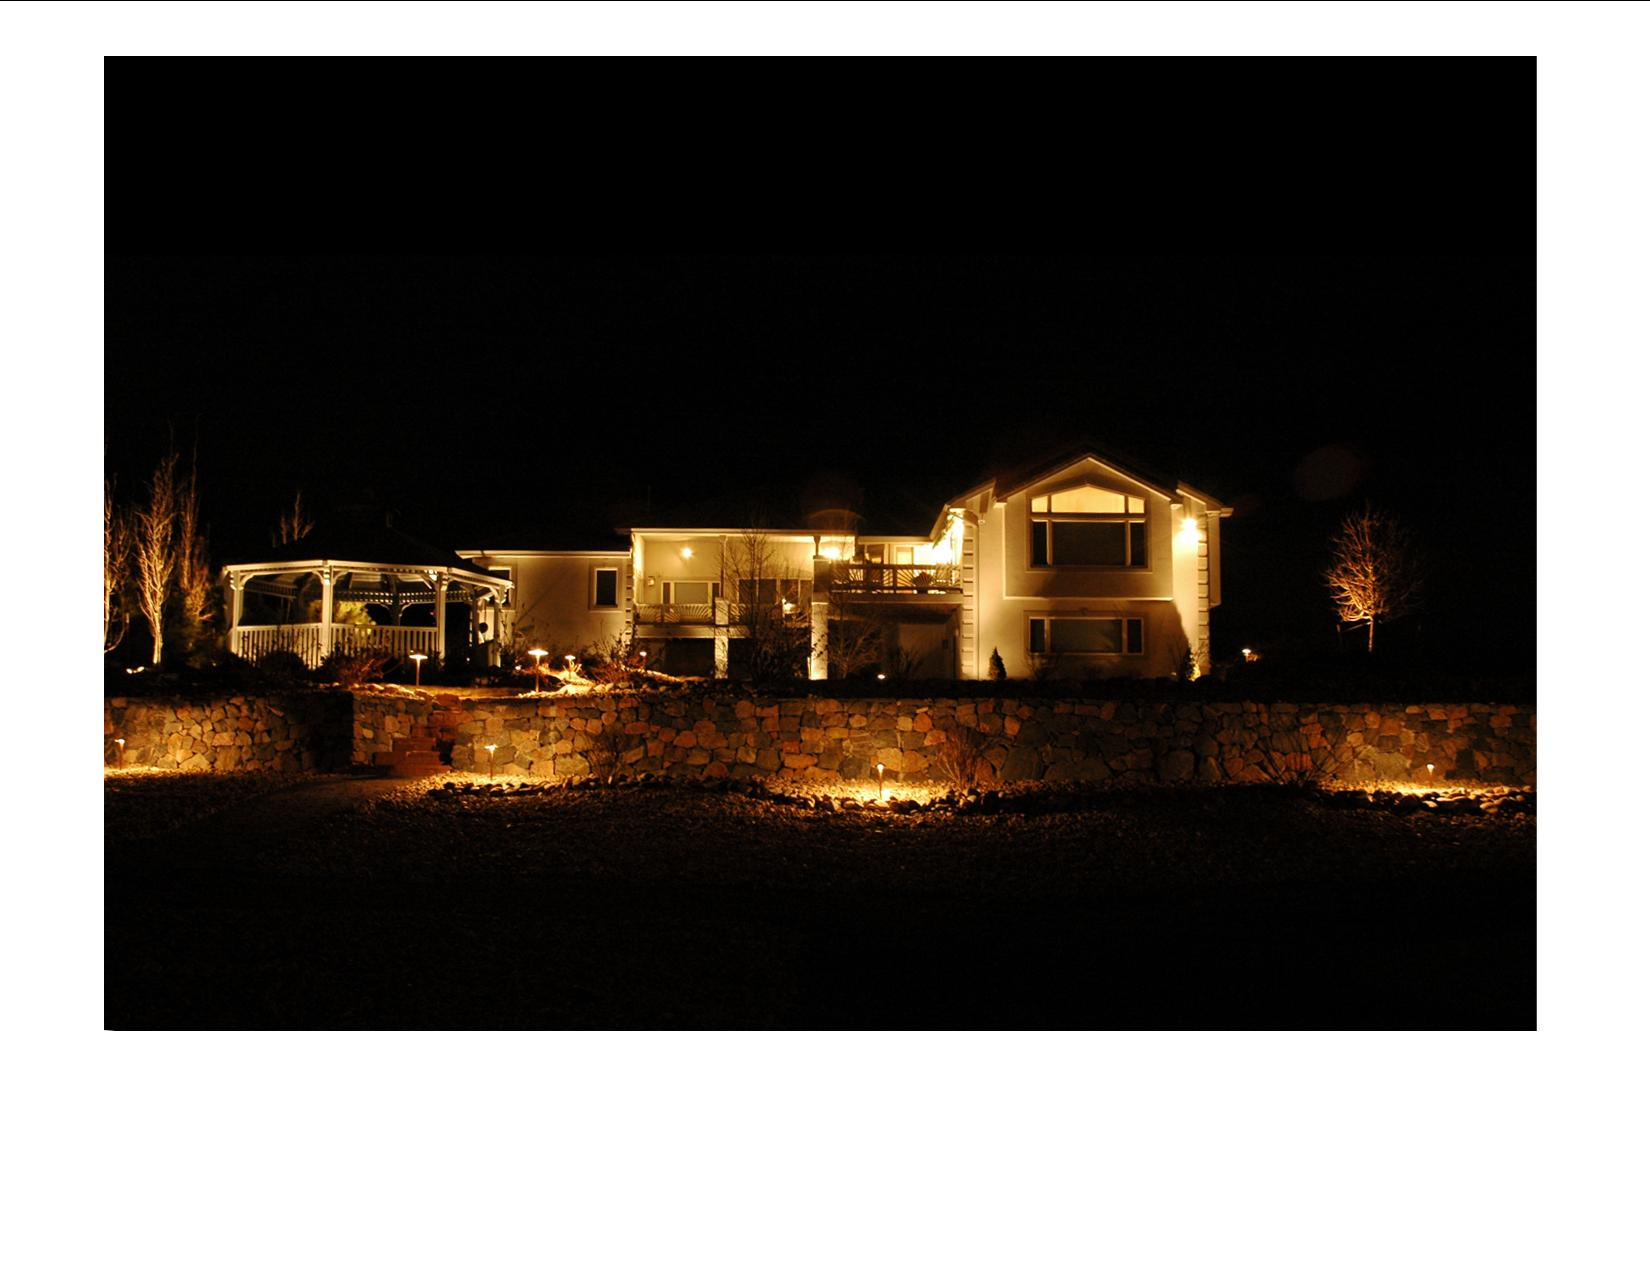 Todd Creek Farms - Brighton, CO architectural and landscape lighting. Outdoor Lighting Perspectives' designs always feature architectural lighting in conjunction with landscape lighting. By up-lighting the back of the house, the pergola and trees in conjunction with down-lighting the walkways and steps, and flood-lighting the terraced rock walls, the design is well-balanced.